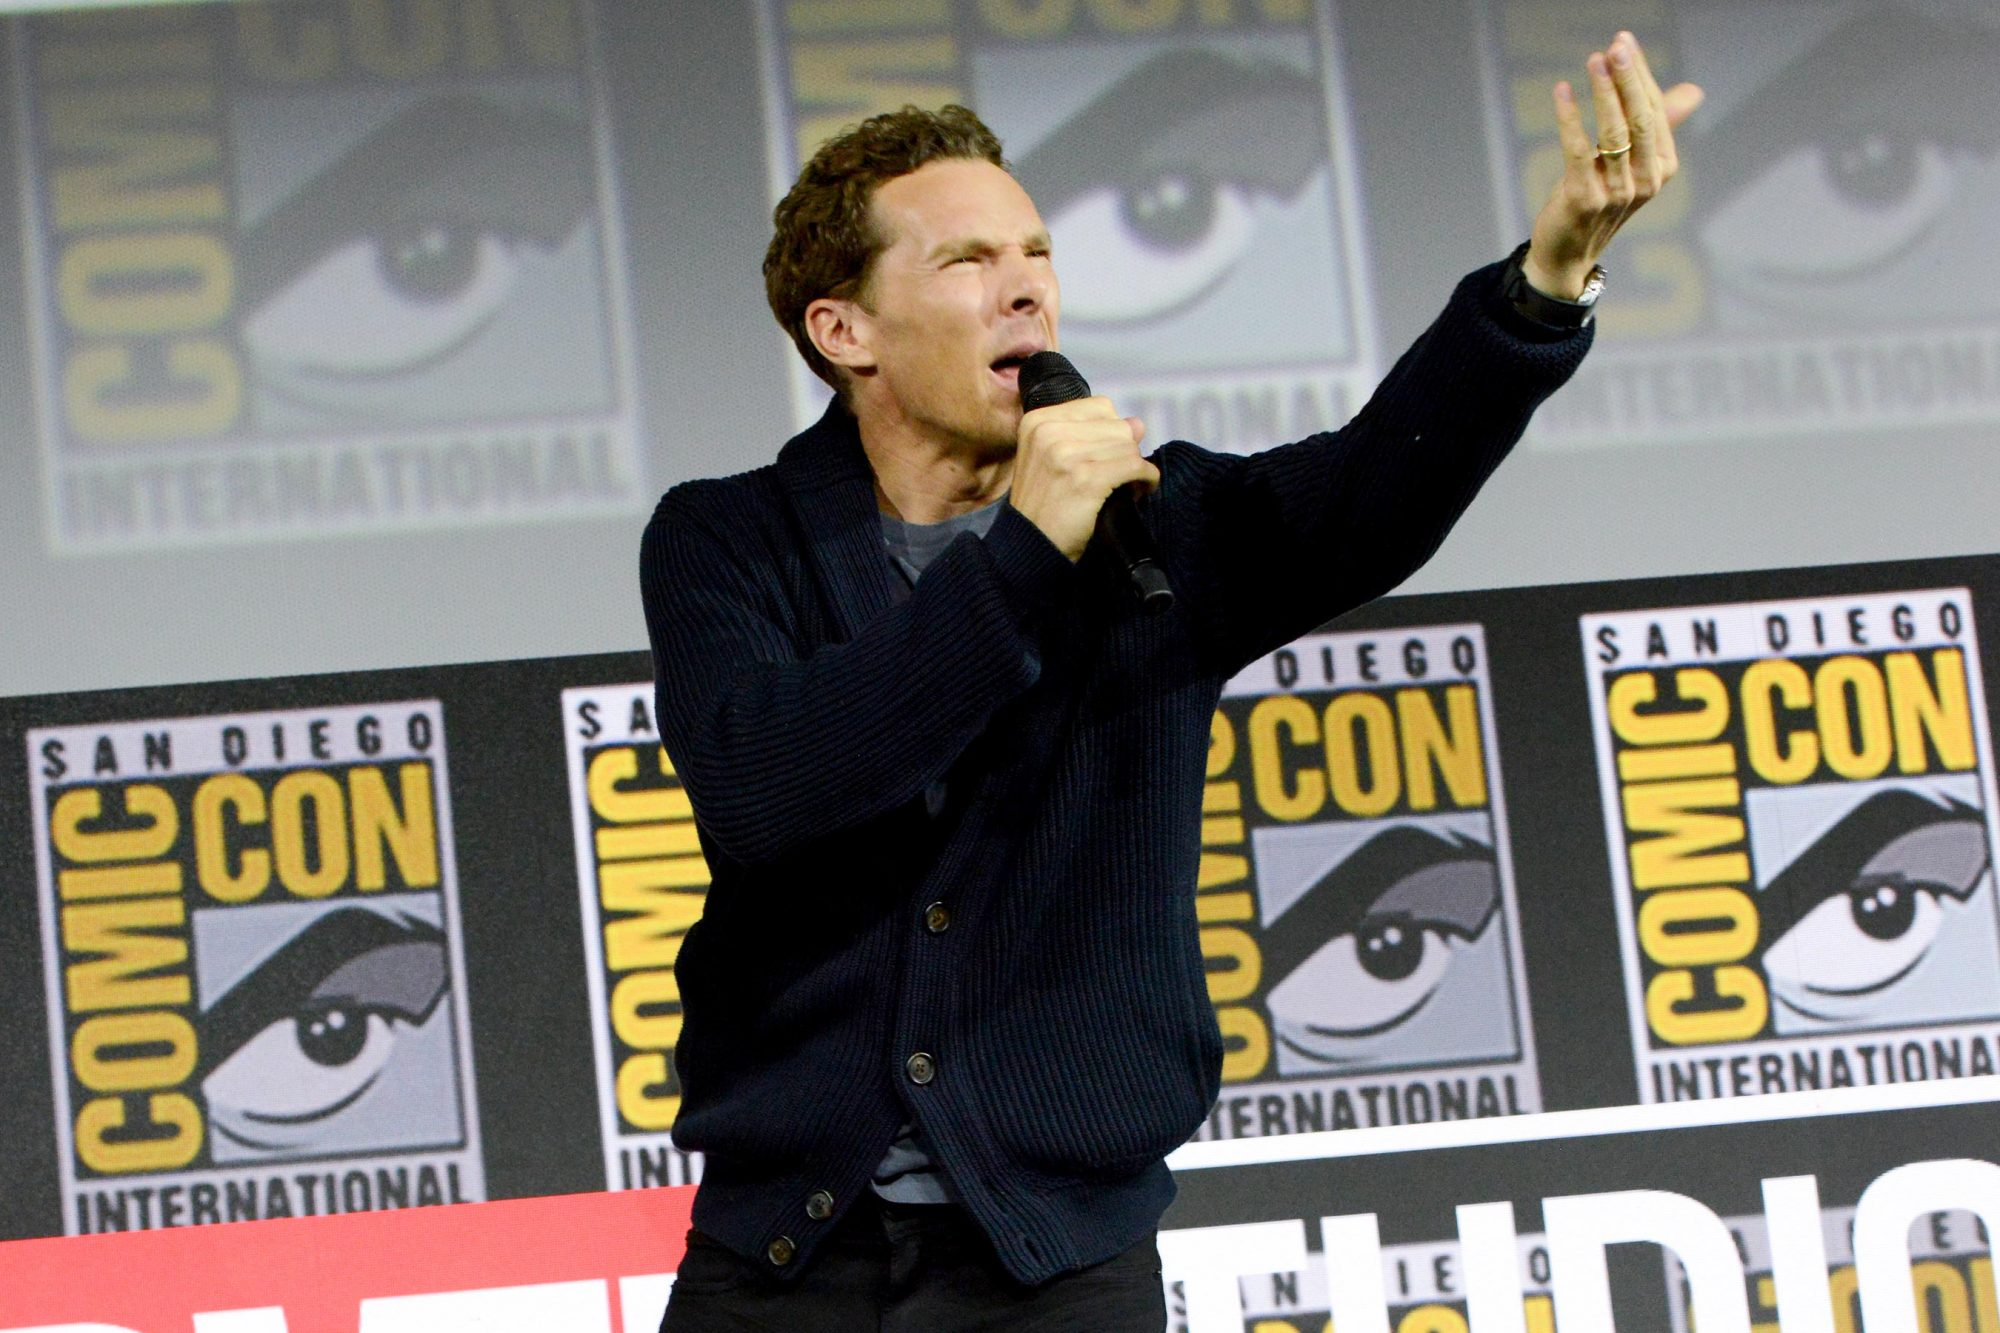 SAN DIEGO, CALIFORNIA - JULY 20: Benedict Cumberbatch speaks at the Marvel Studios Panel during 2019 Comic-Con International at San Diego Convention Center on July 20, 2019 in San Diego, California. (Photo by Albert L. Ortega/Getty Images)